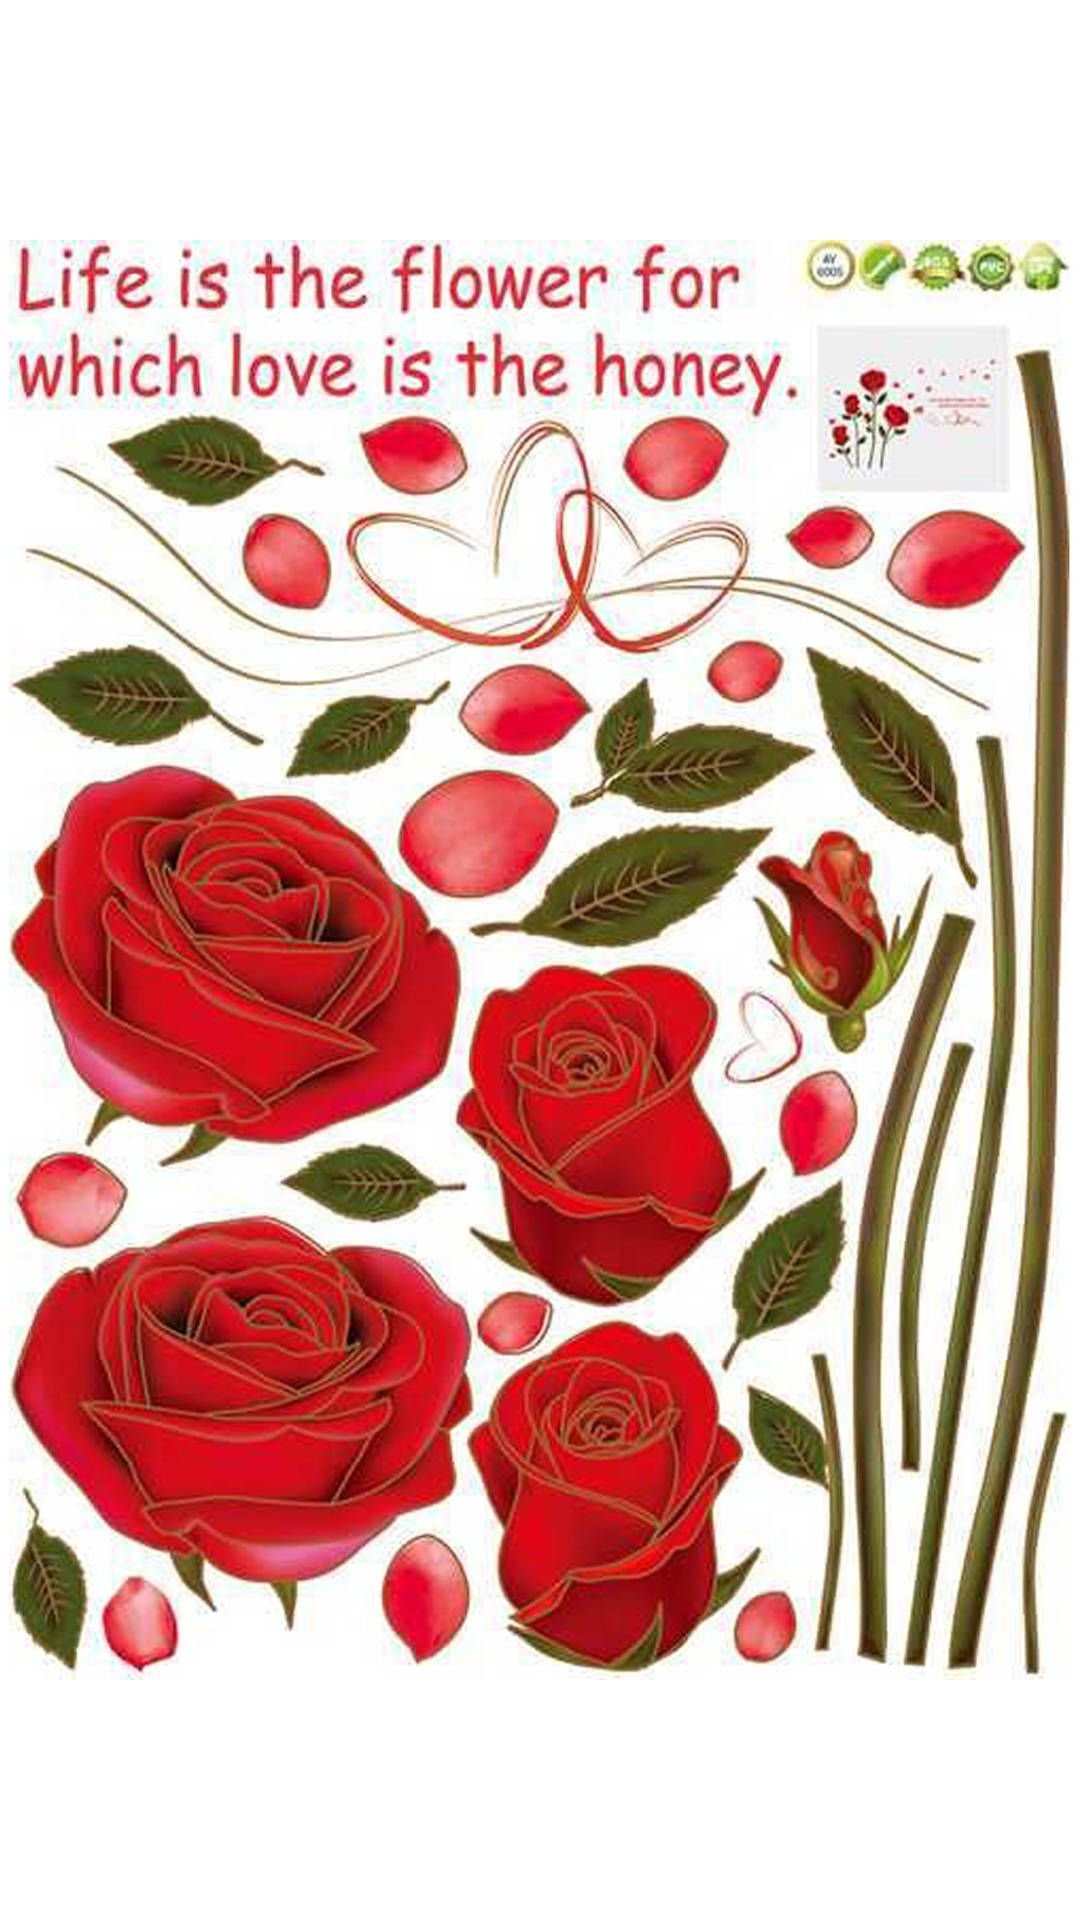 14a4e586c1 Buy WallTola Bedroom Romantic Rose Flowers Wall Sticker Online at Low  Prices in India - Paytm.com